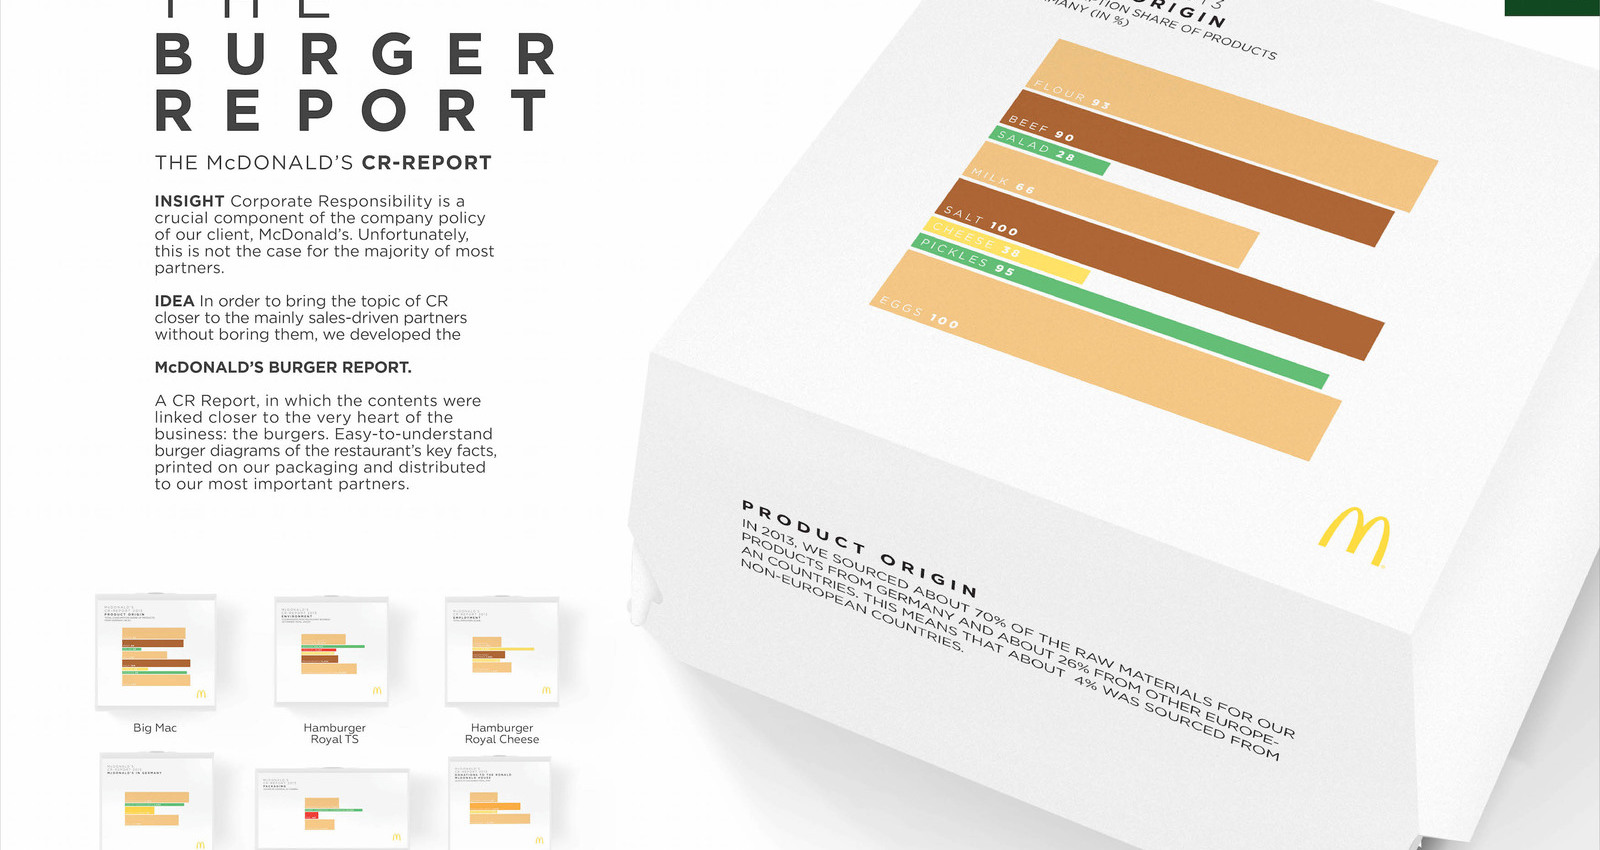 The Burger Report